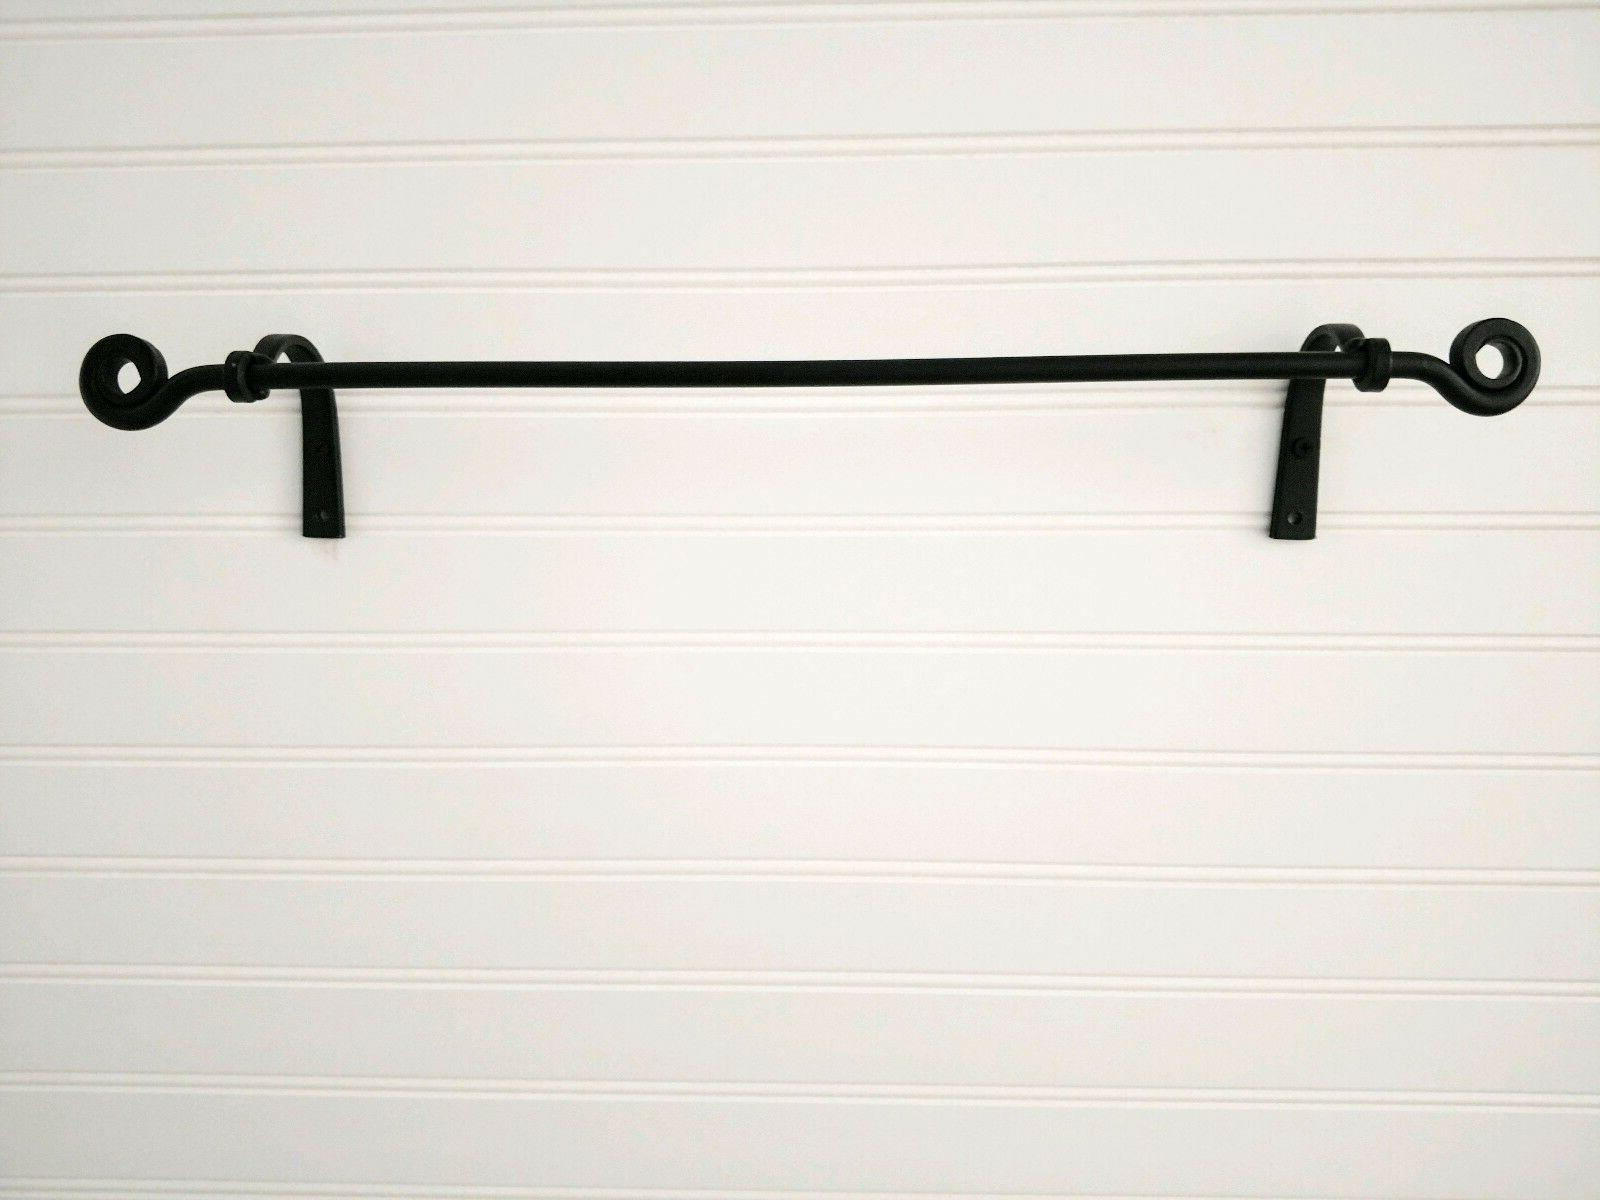 Amish forged wrought iron small towel bar - strong & sturdy